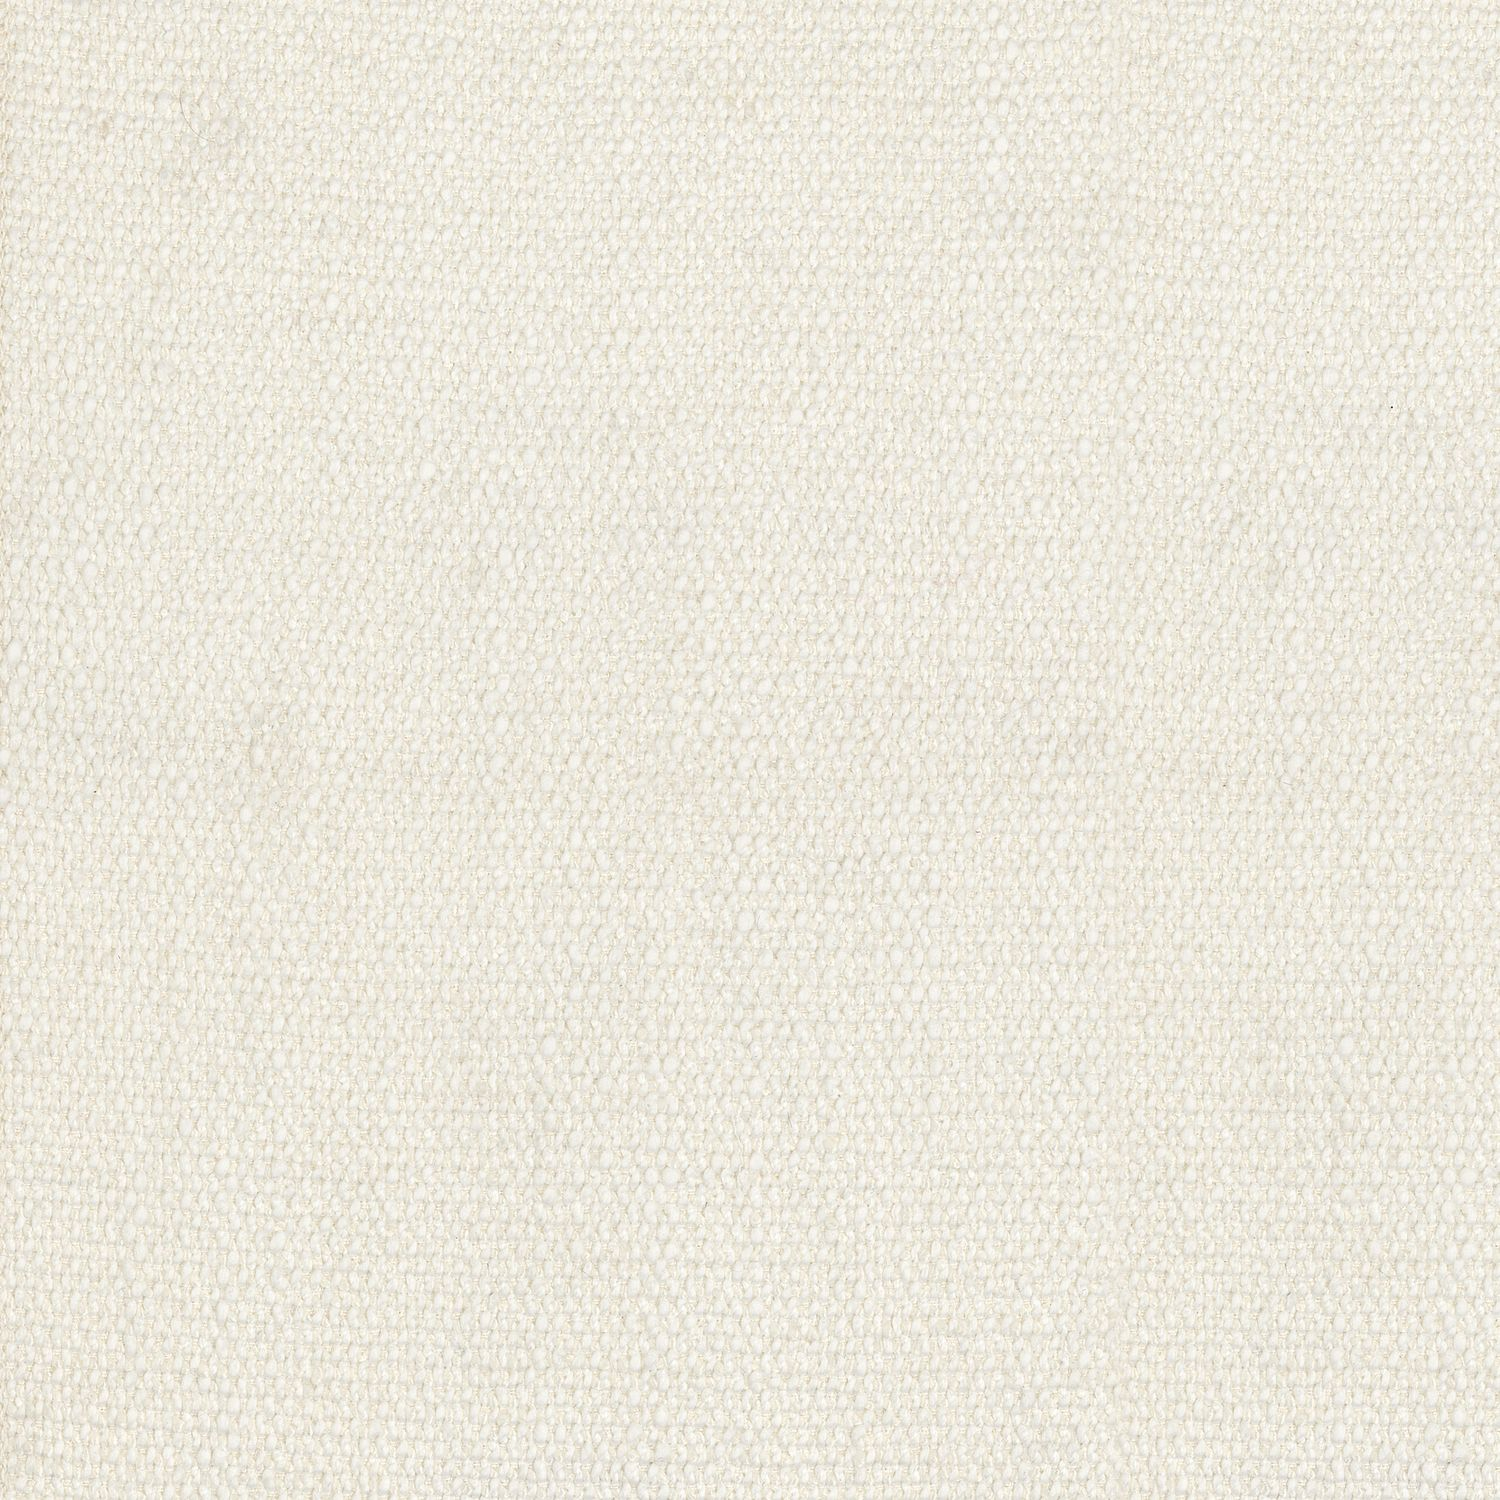 43590204 Collection - Rondo Fabric